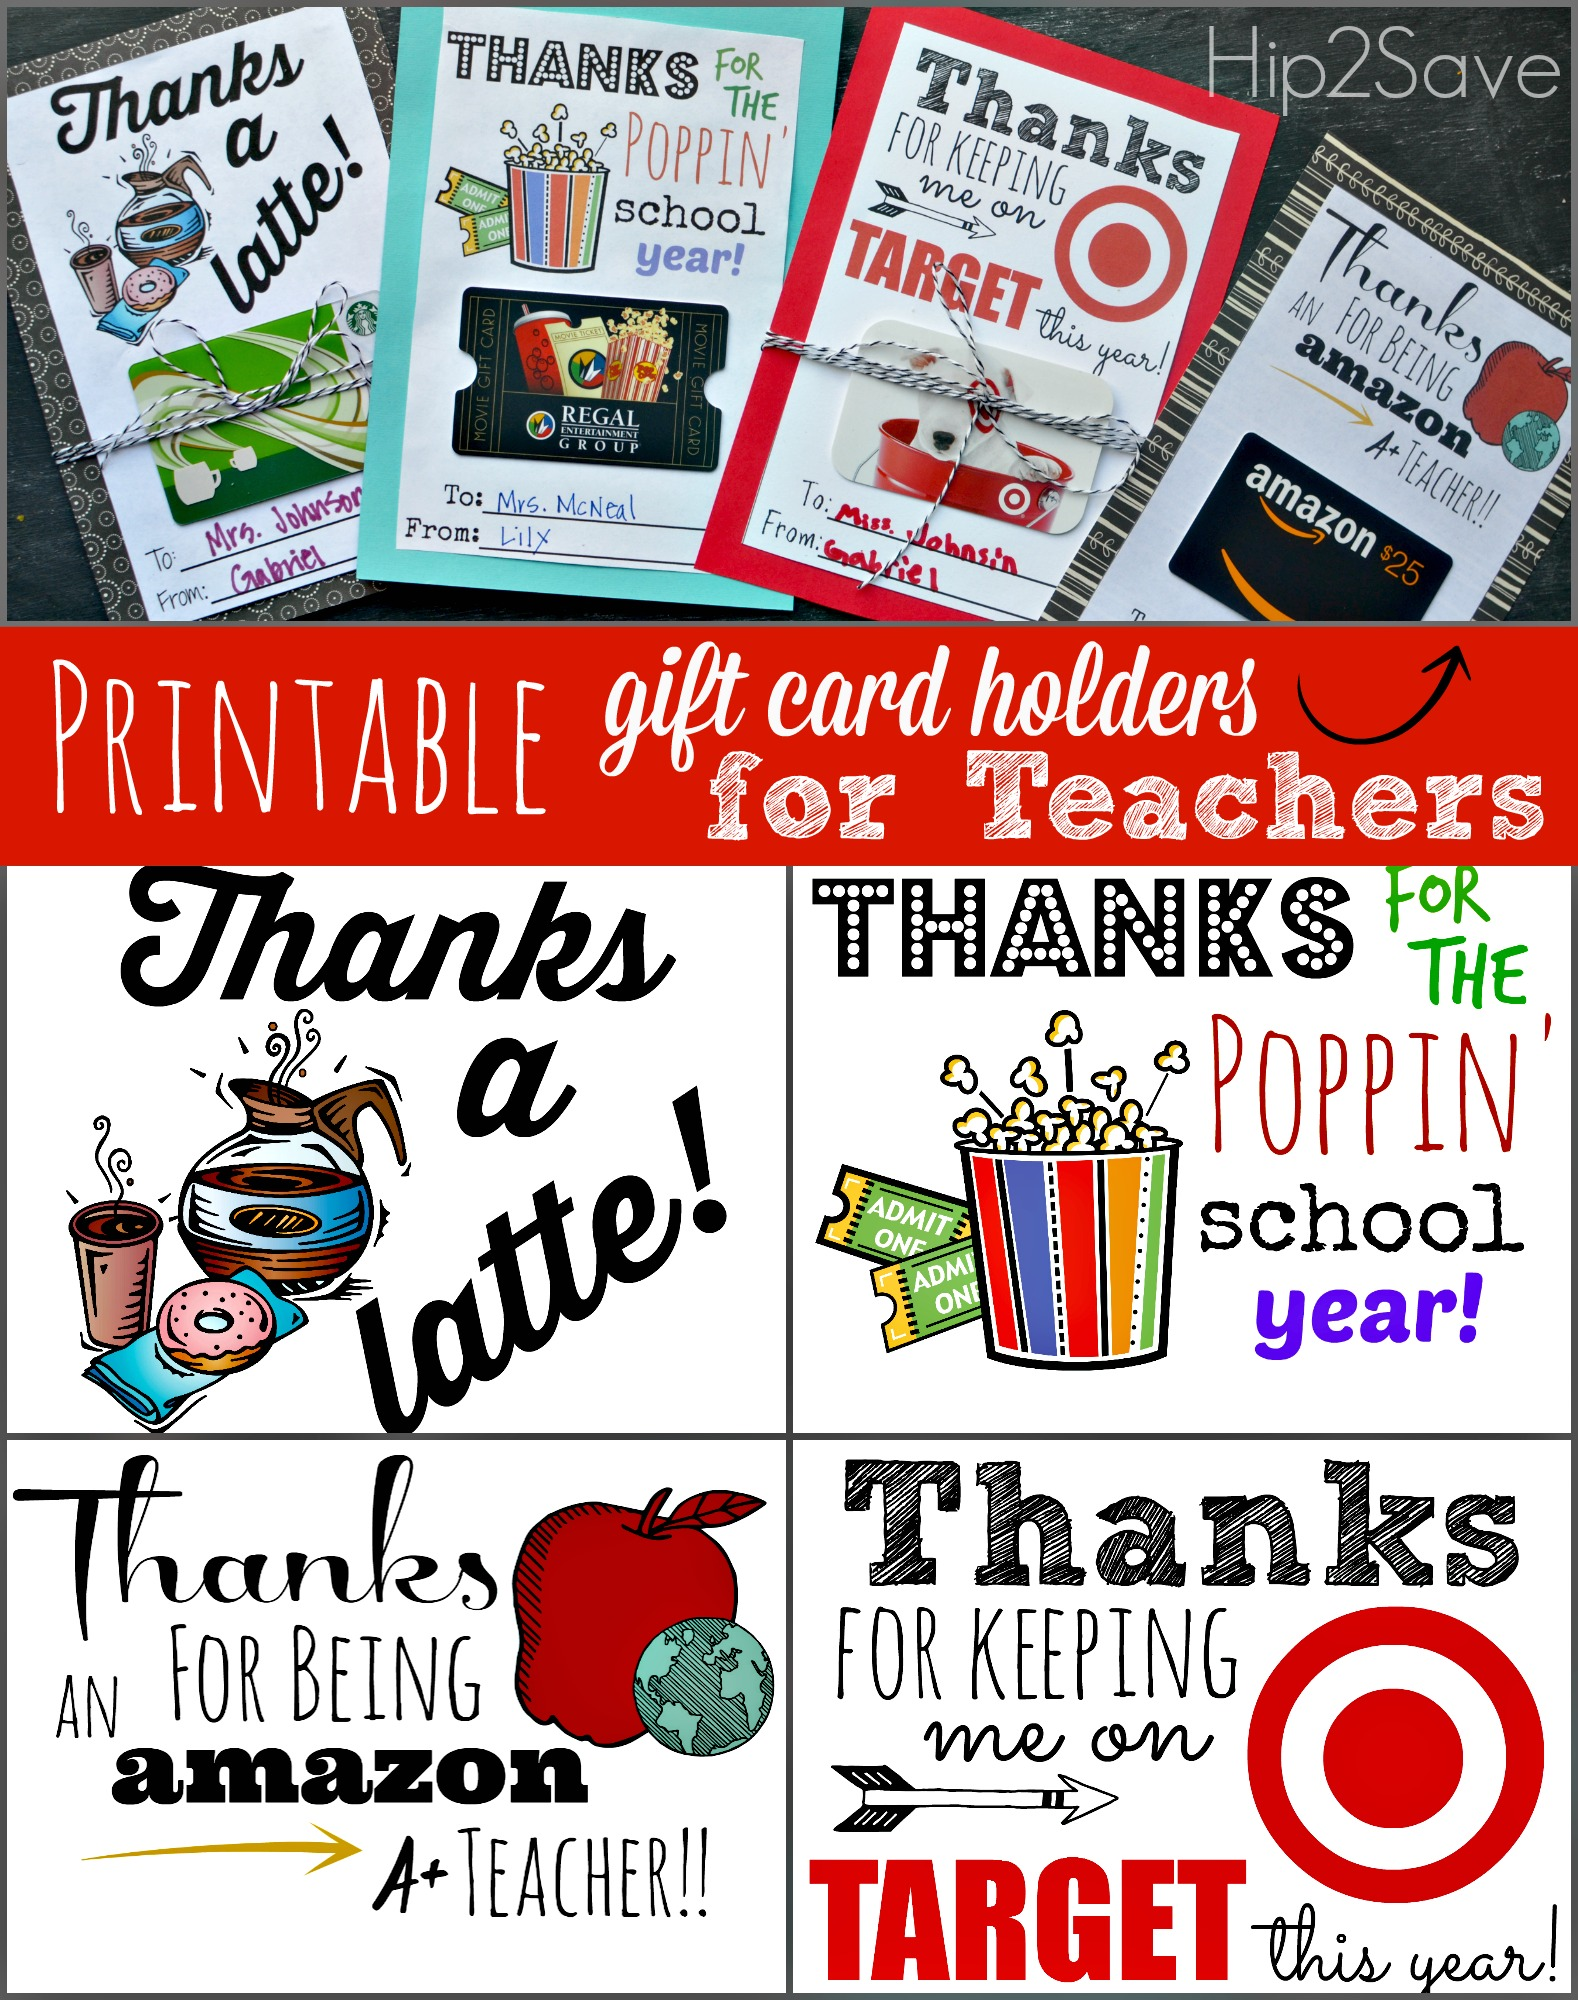 5 Images of Printable Teacher Appreciation Gift Card Holders